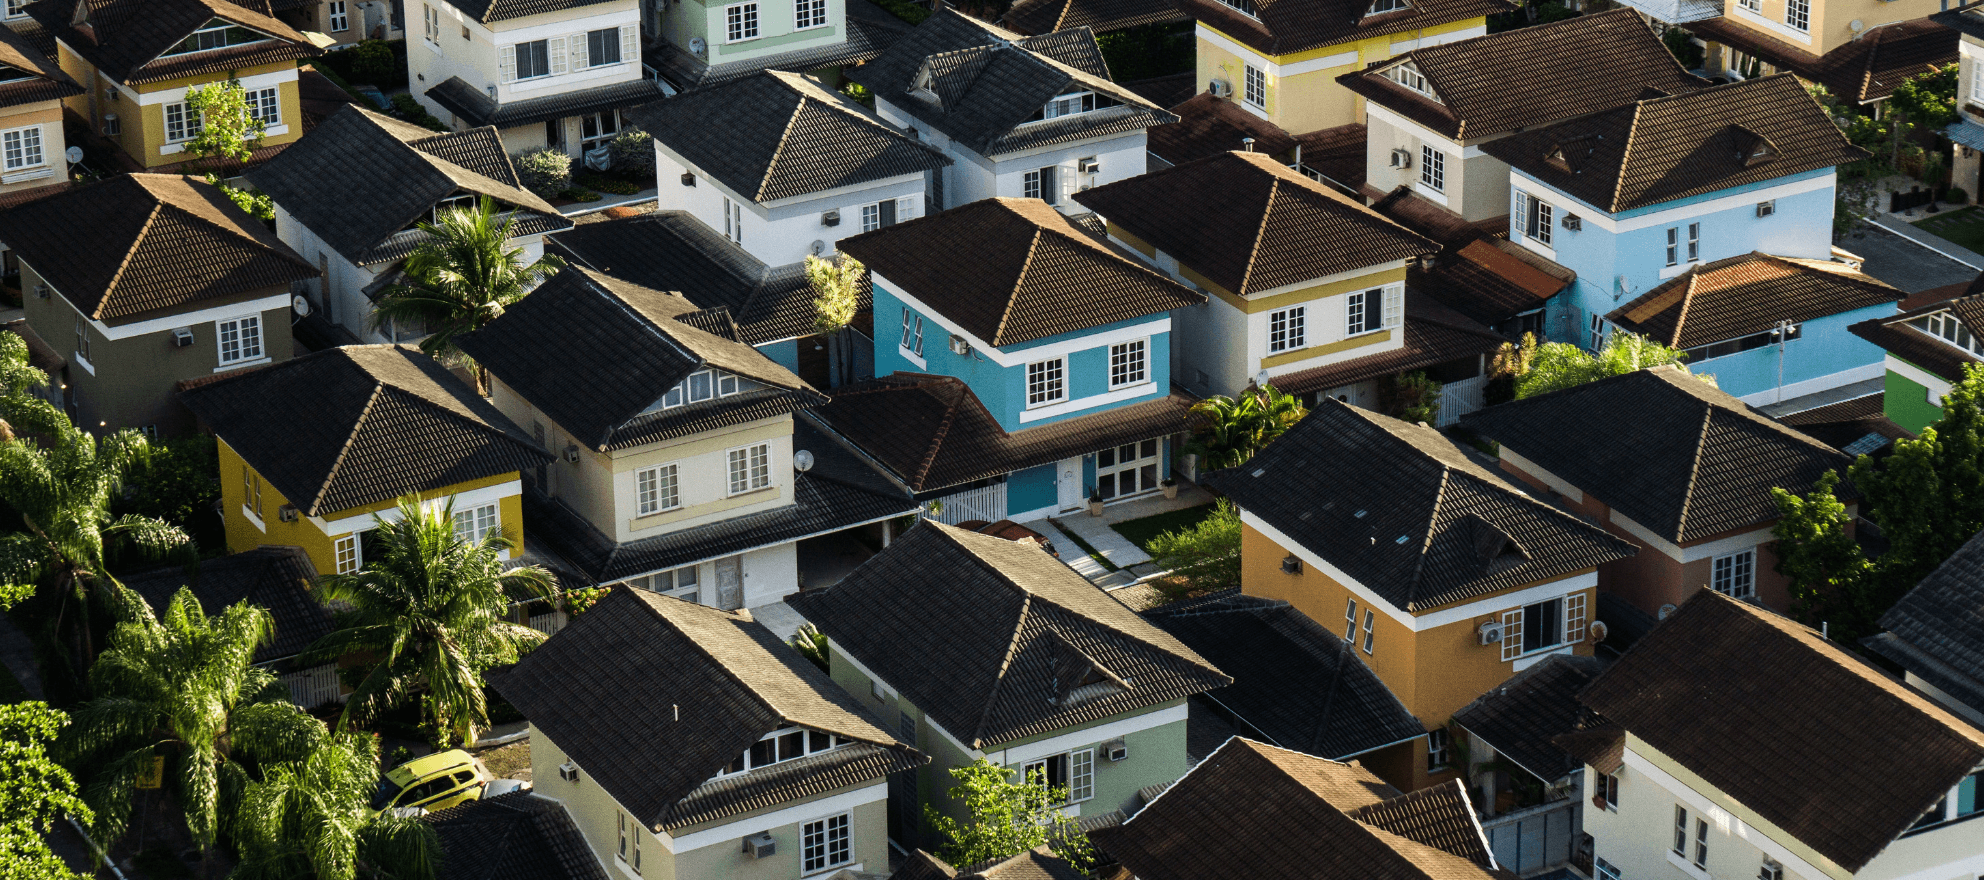 rows of colorful houses